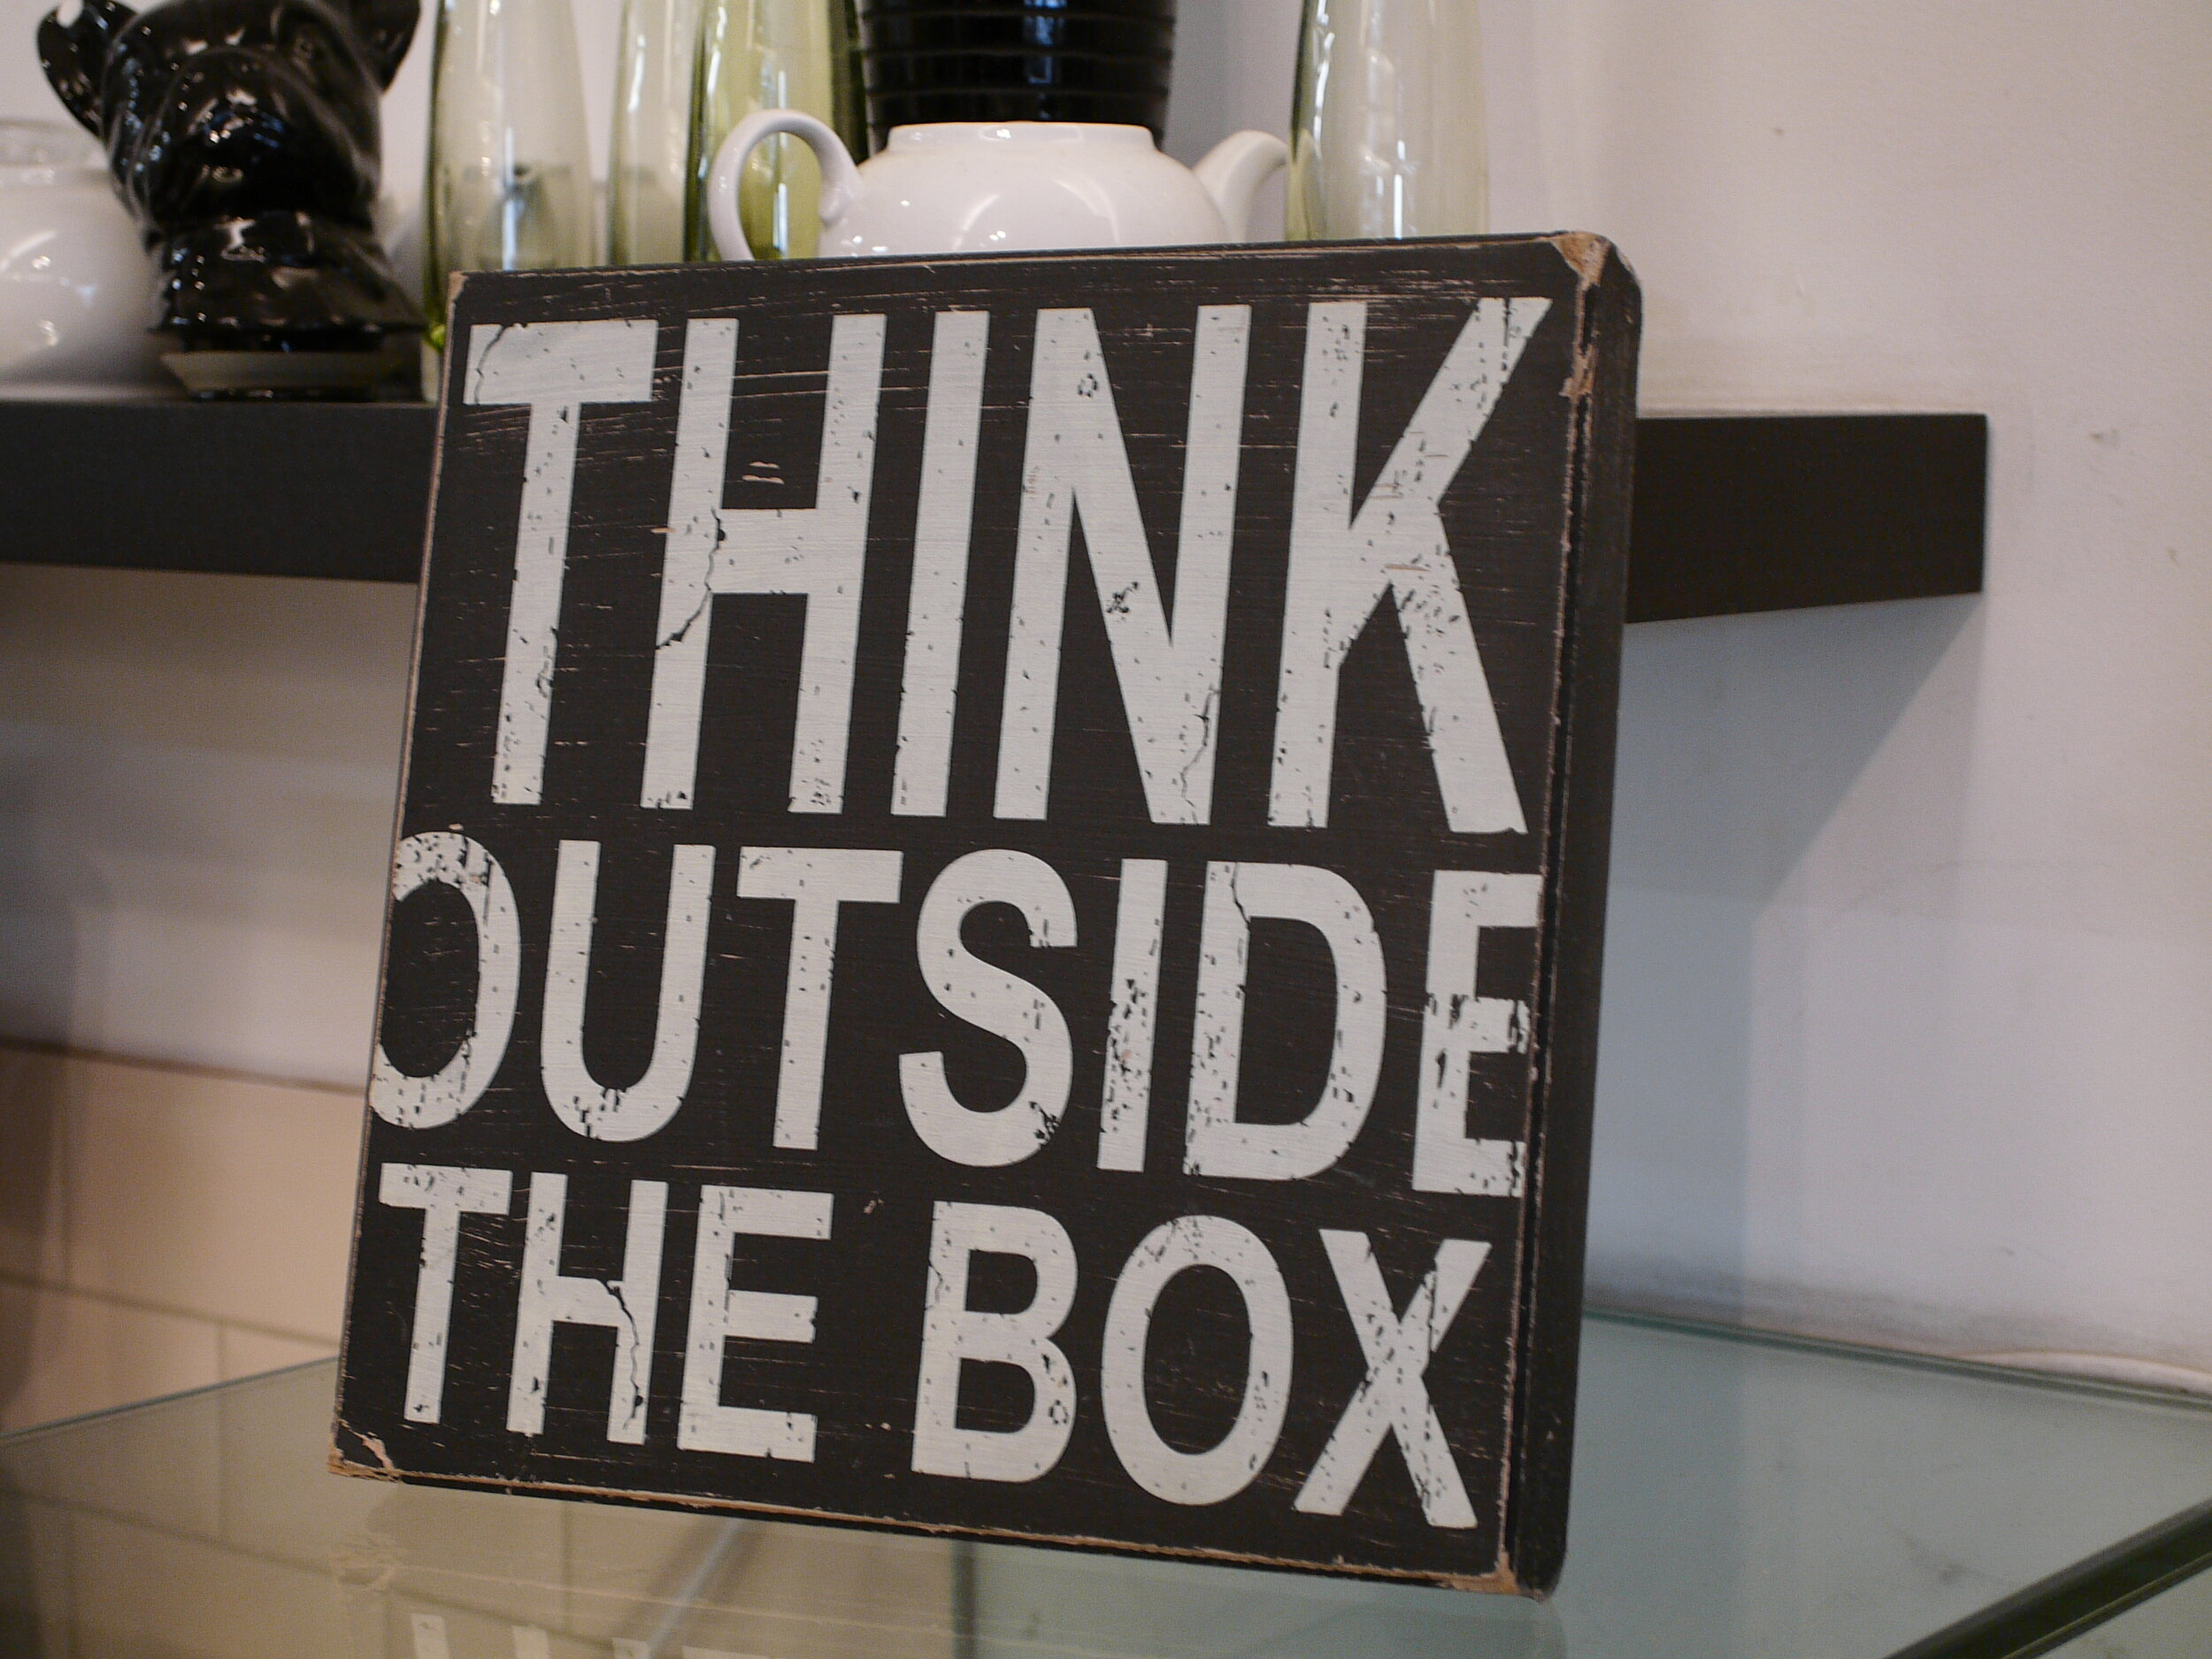 Think outside the box, by Terry Freedman